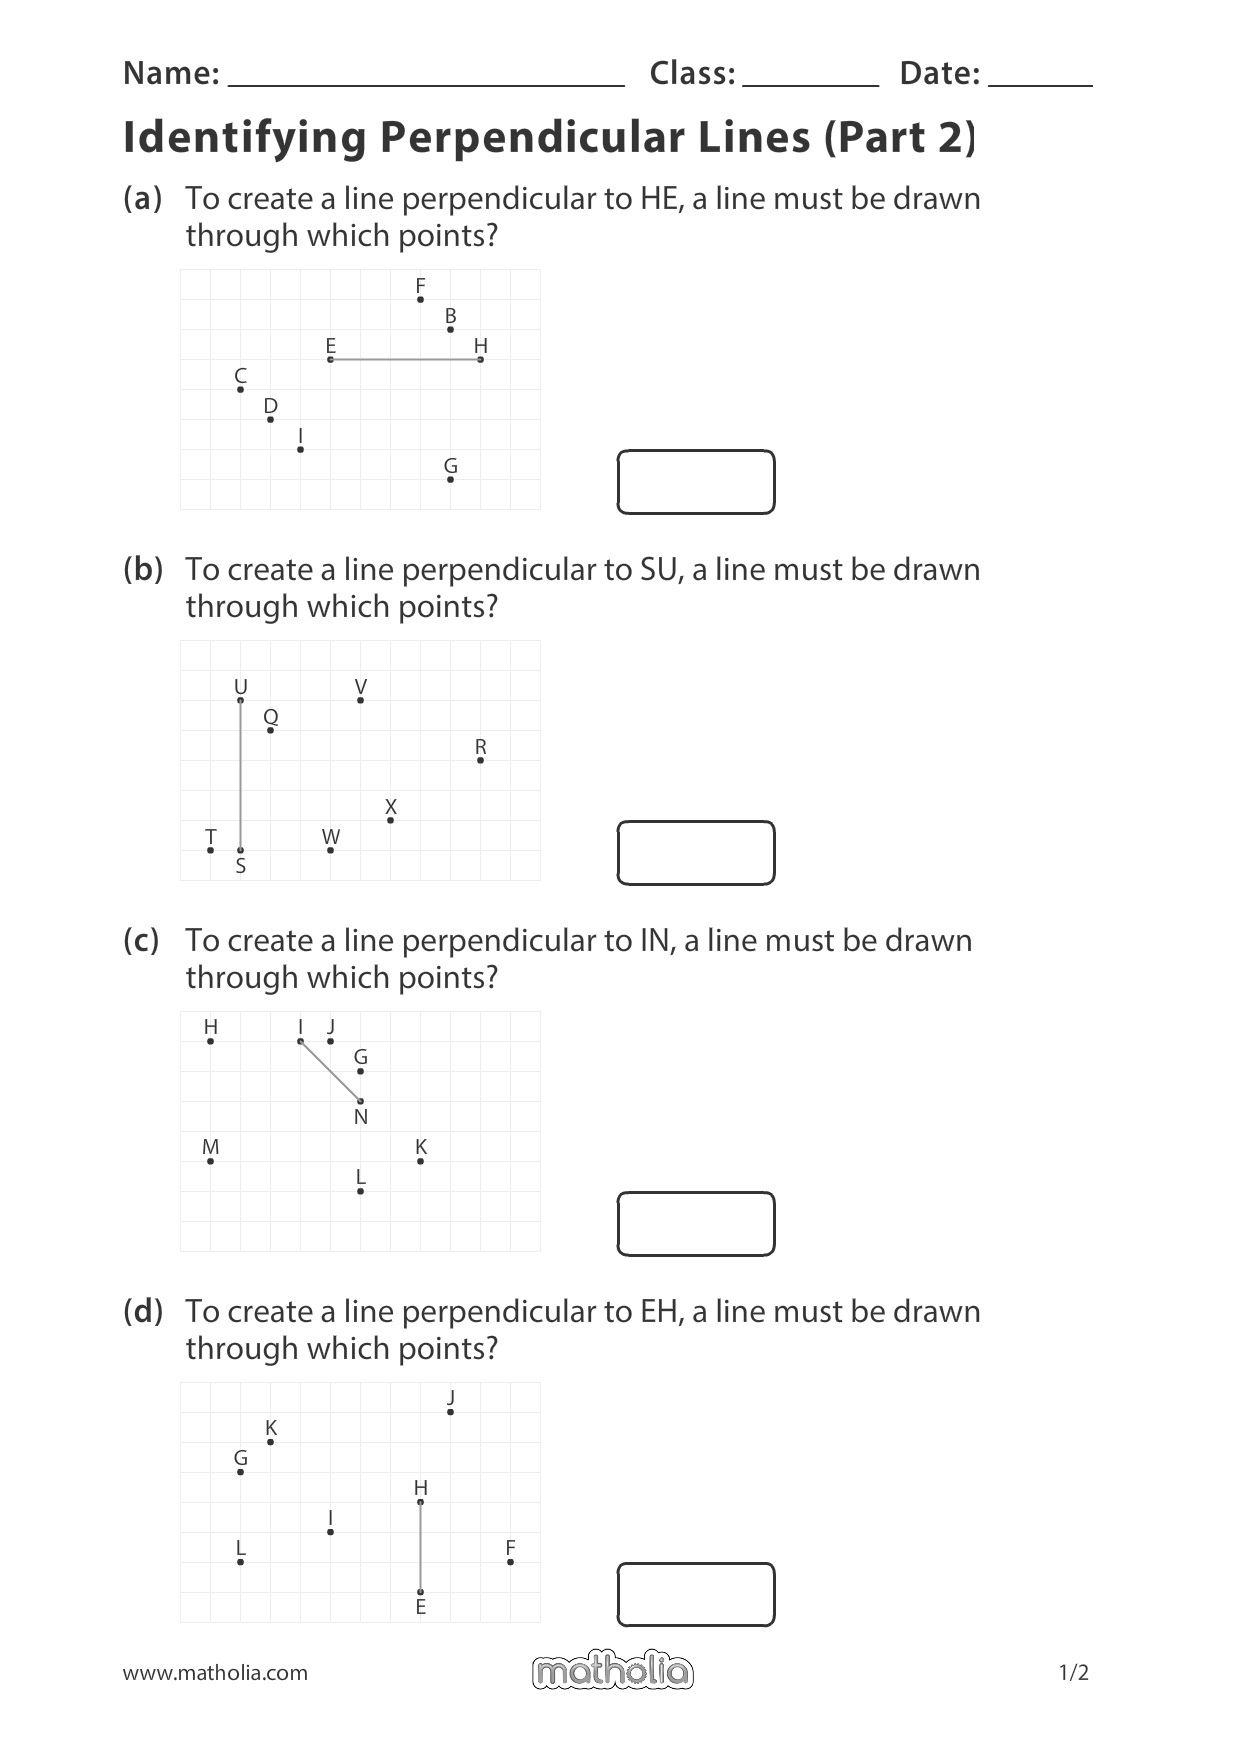 Identifying Perpendicular Lines Part 2 In